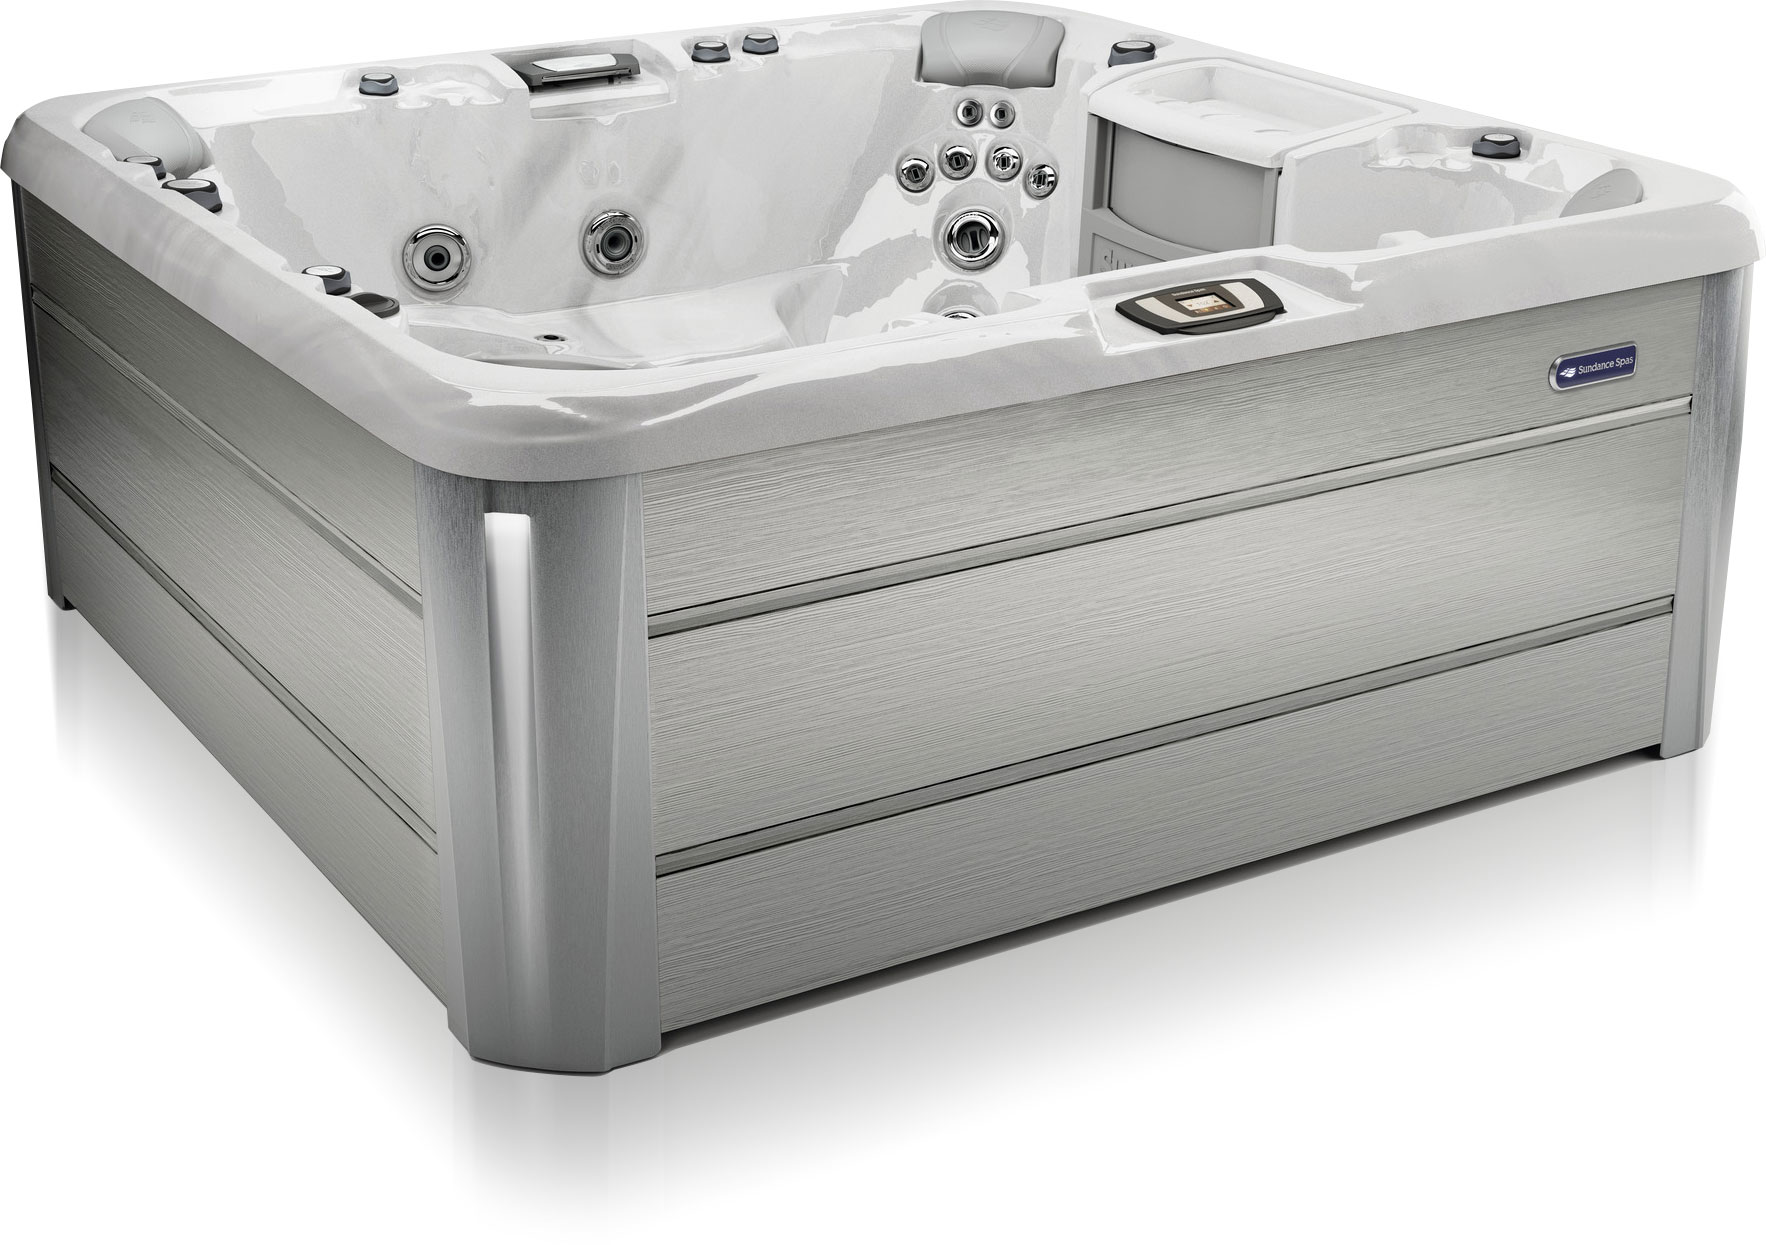 Sundance Spas 880 Series Optima Hot Tub